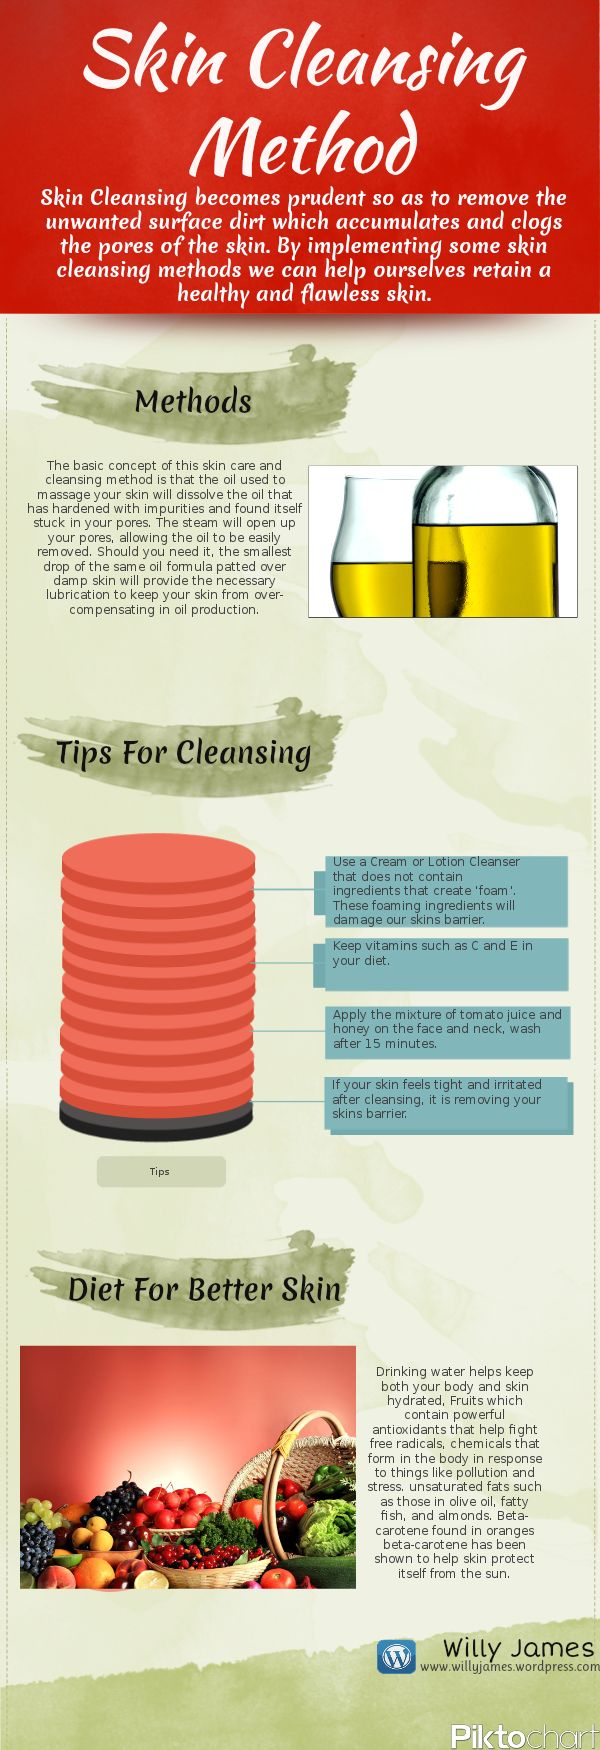 Skin Cleansing Methods. For more health tips and anti-aging products, visit www.nuvosa.com